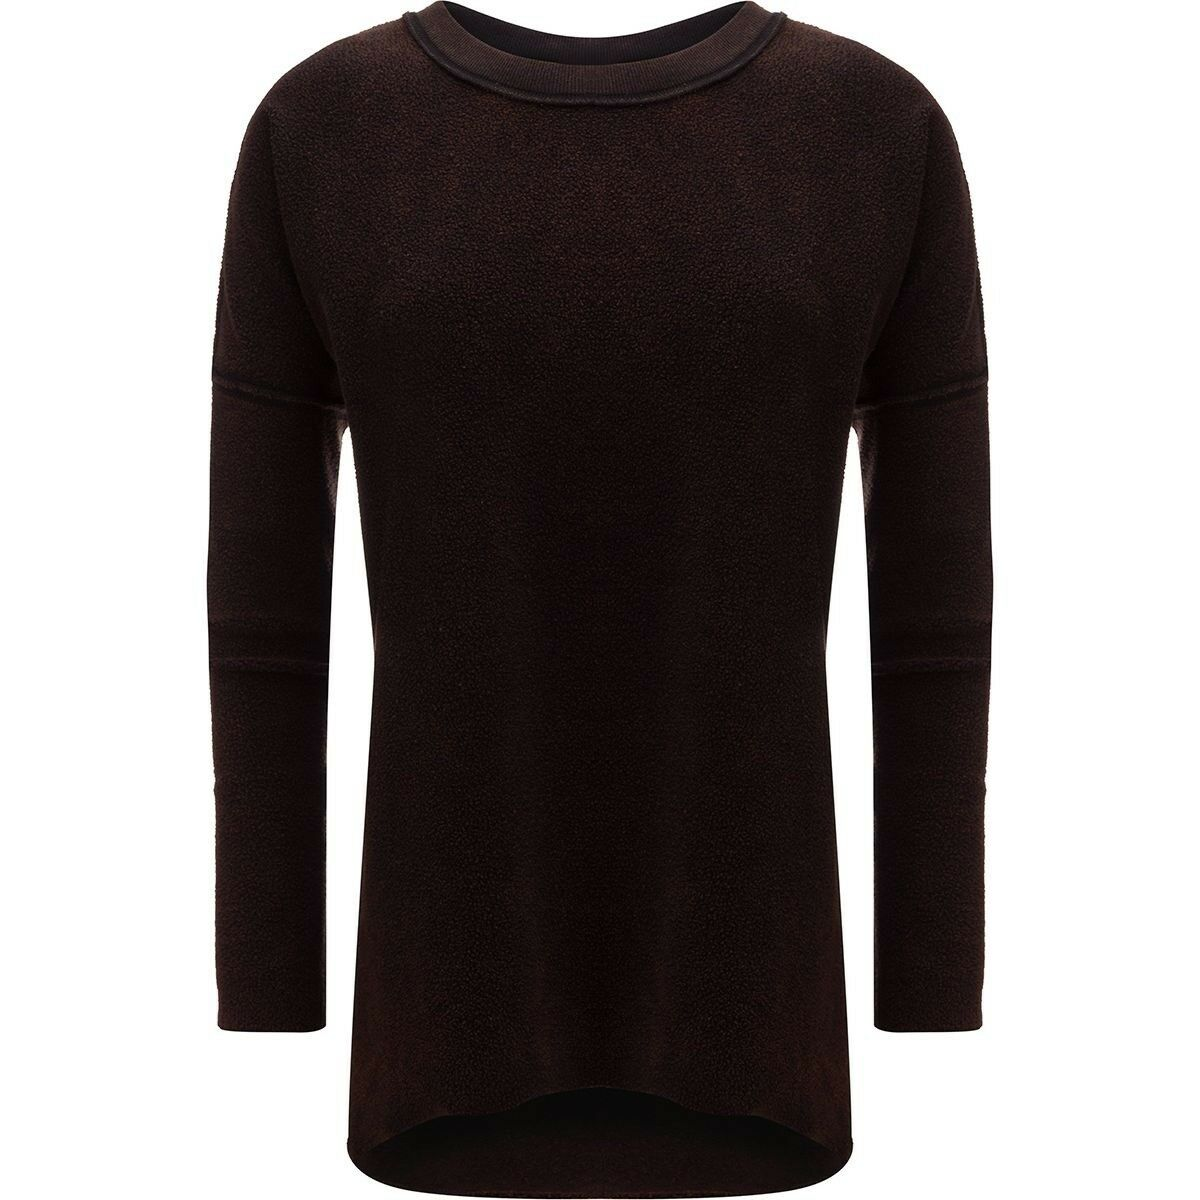 New Free People Washed Ashore Thermal Sweater Top Cozy Shirt schwarz